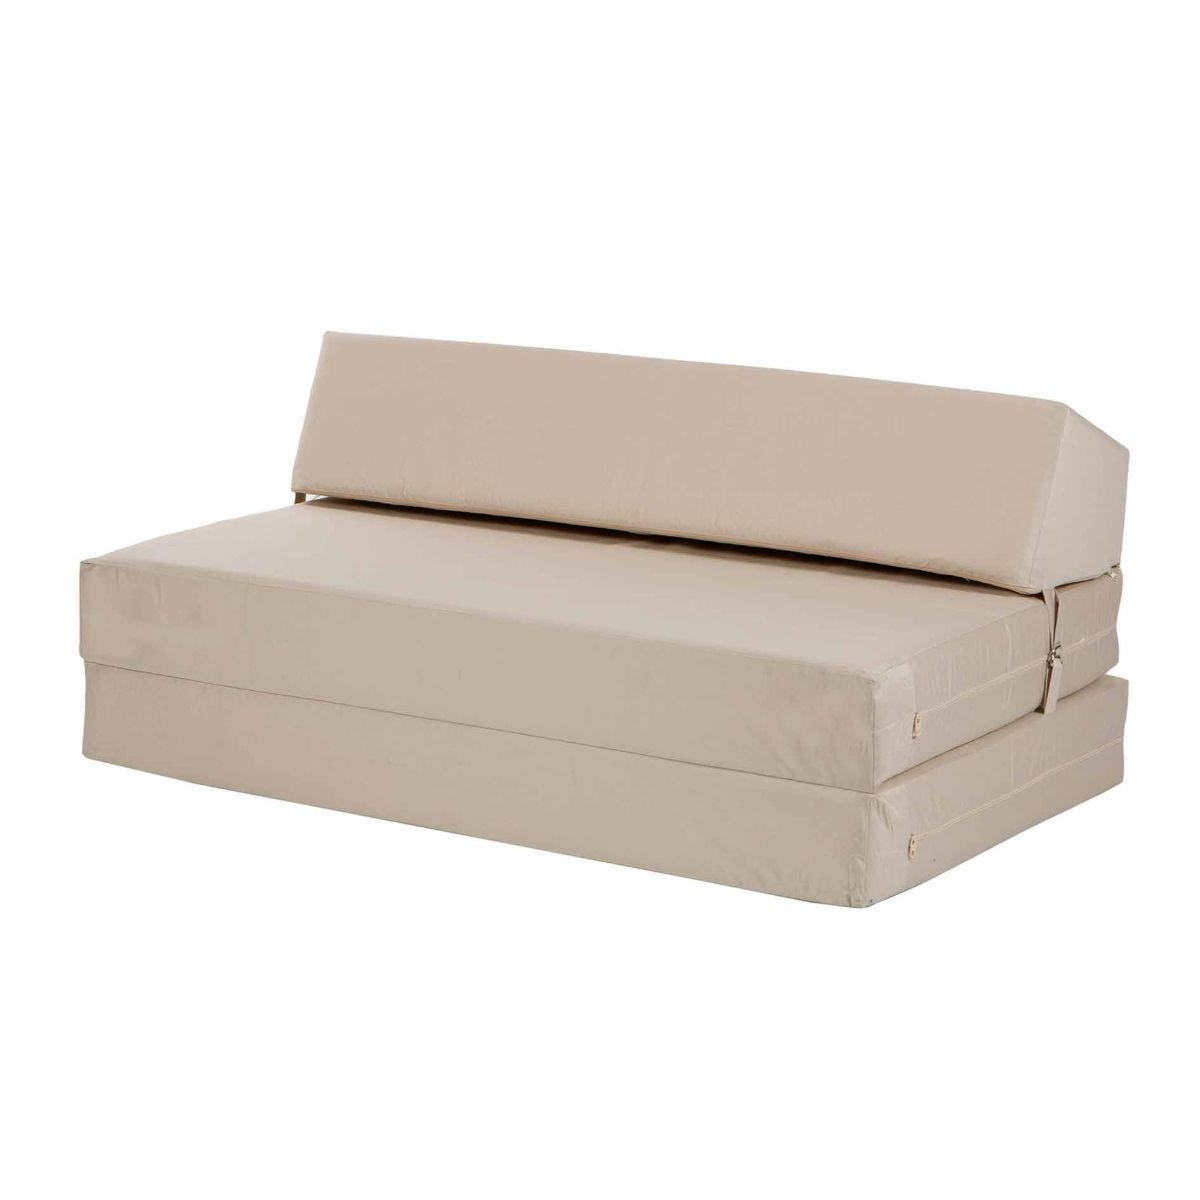 Kaikoo Double Flip Bed Cream